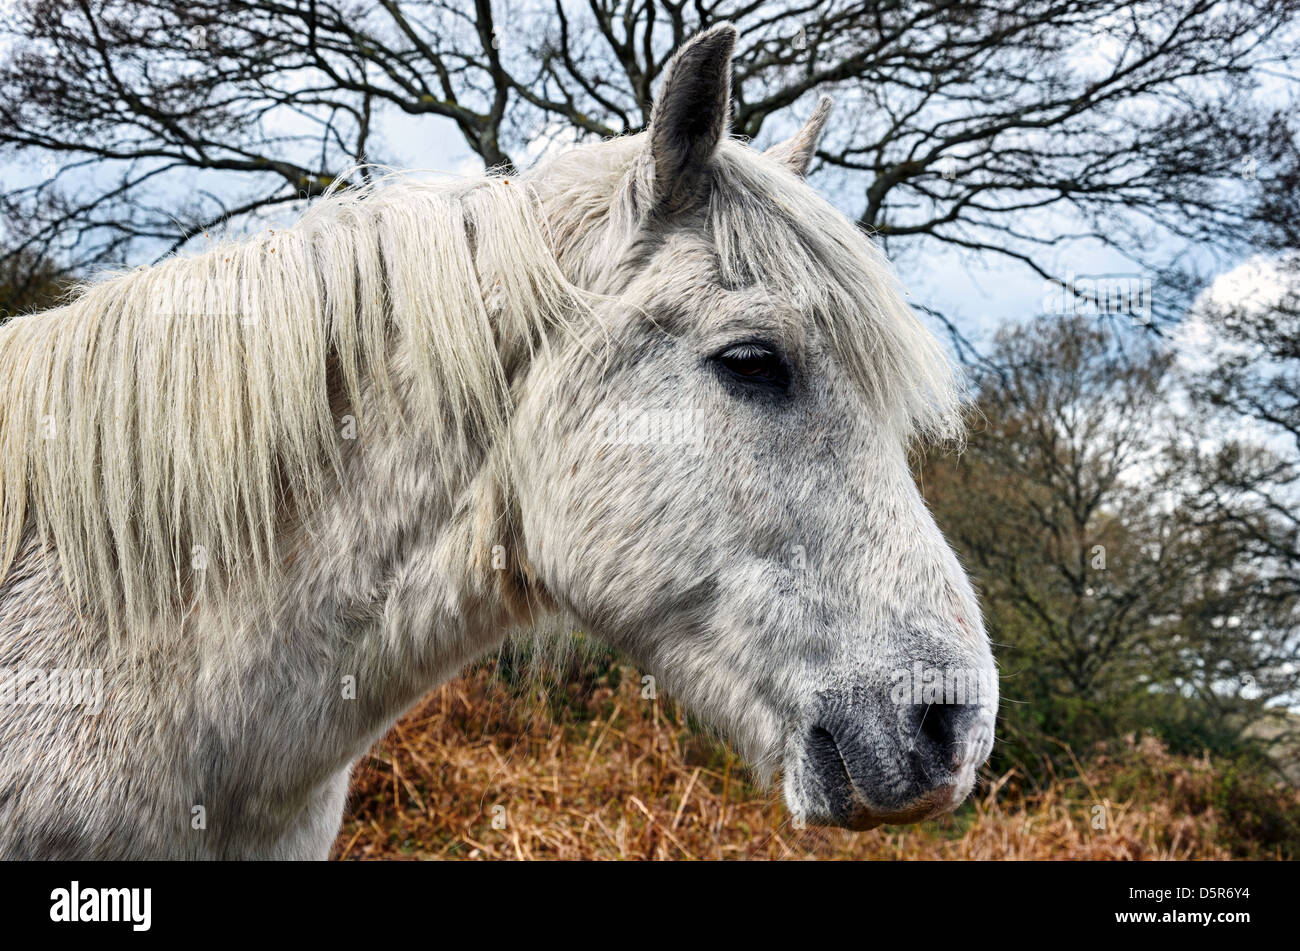 A white stallion pony in the New Forest National Park in Hampshire - Stock Image